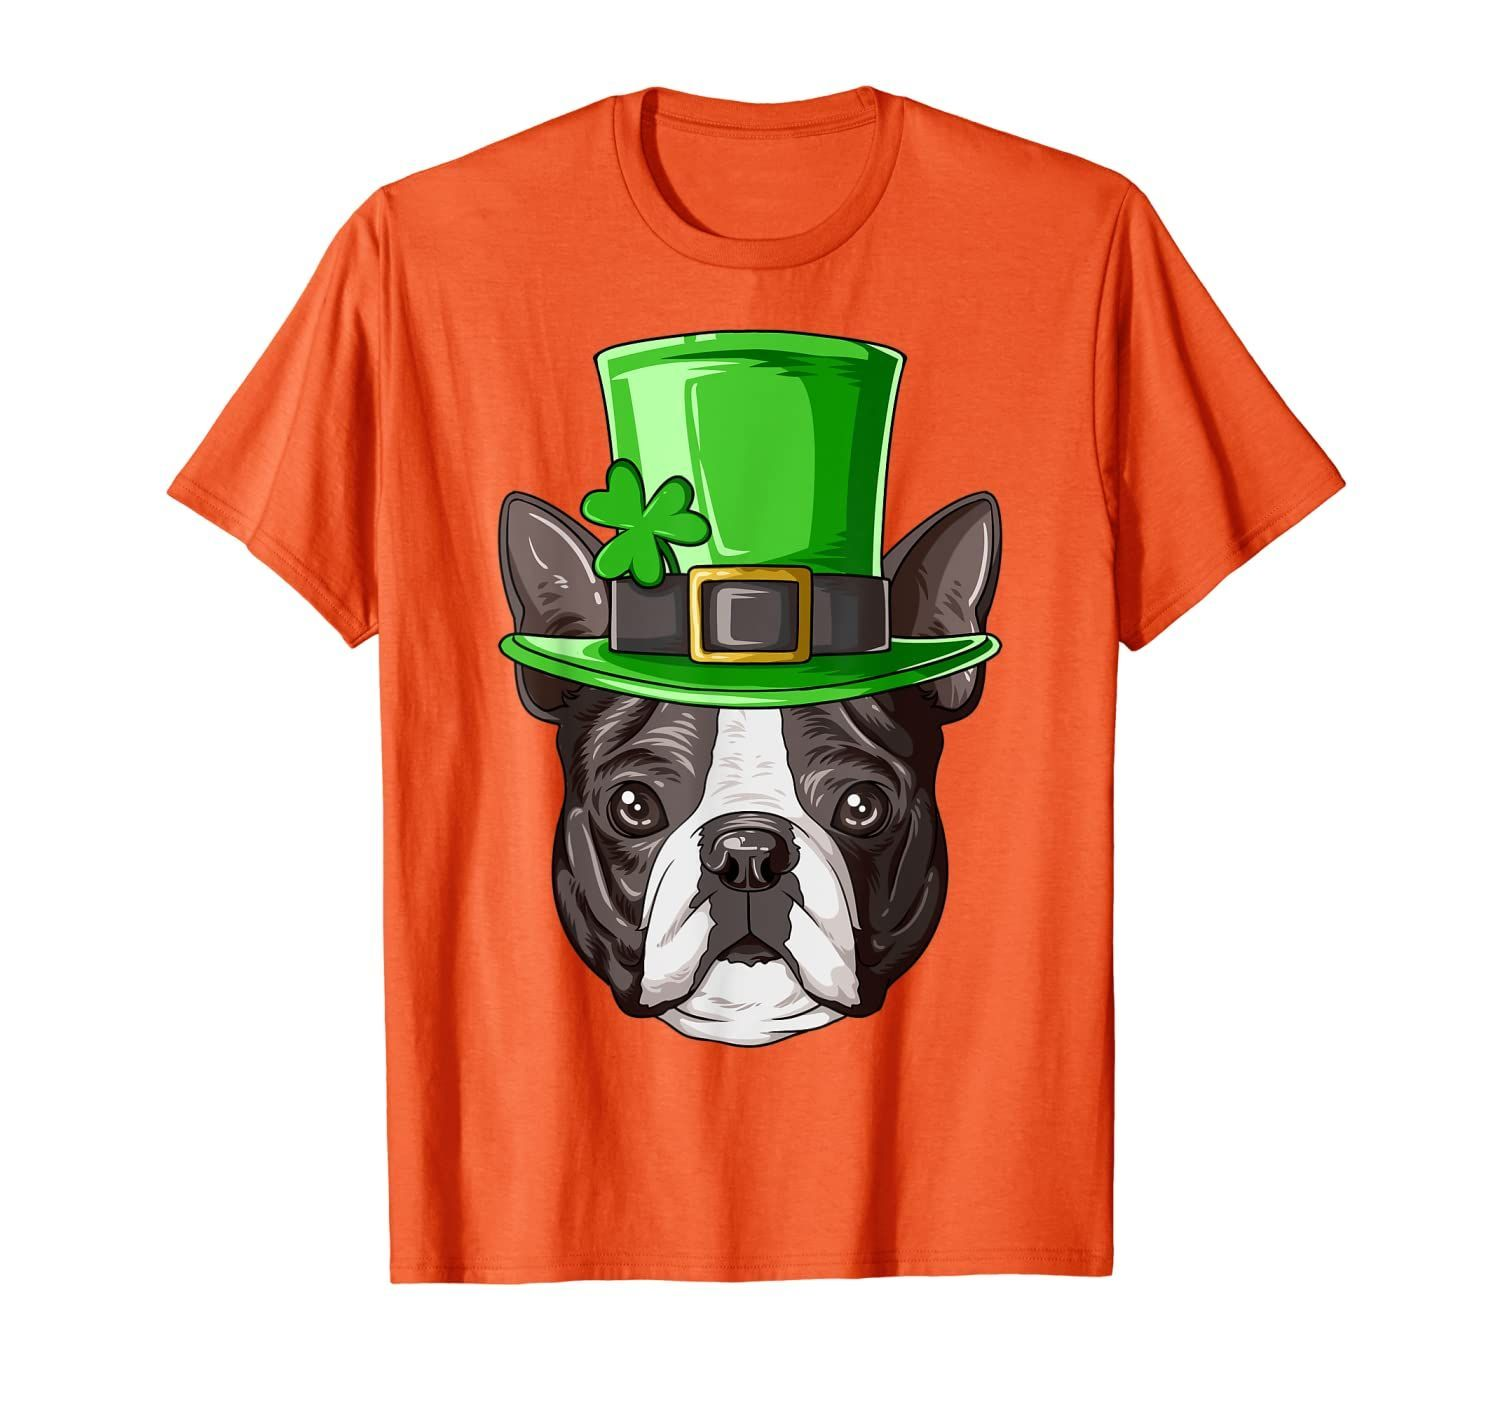 Boston Terrier St Patrick S Day Irish Leprechaun T Shirt Haitianindependenceday Product Details Check Th In 2020 Irish Leprechaun Haitian Independence Day Leprechaun